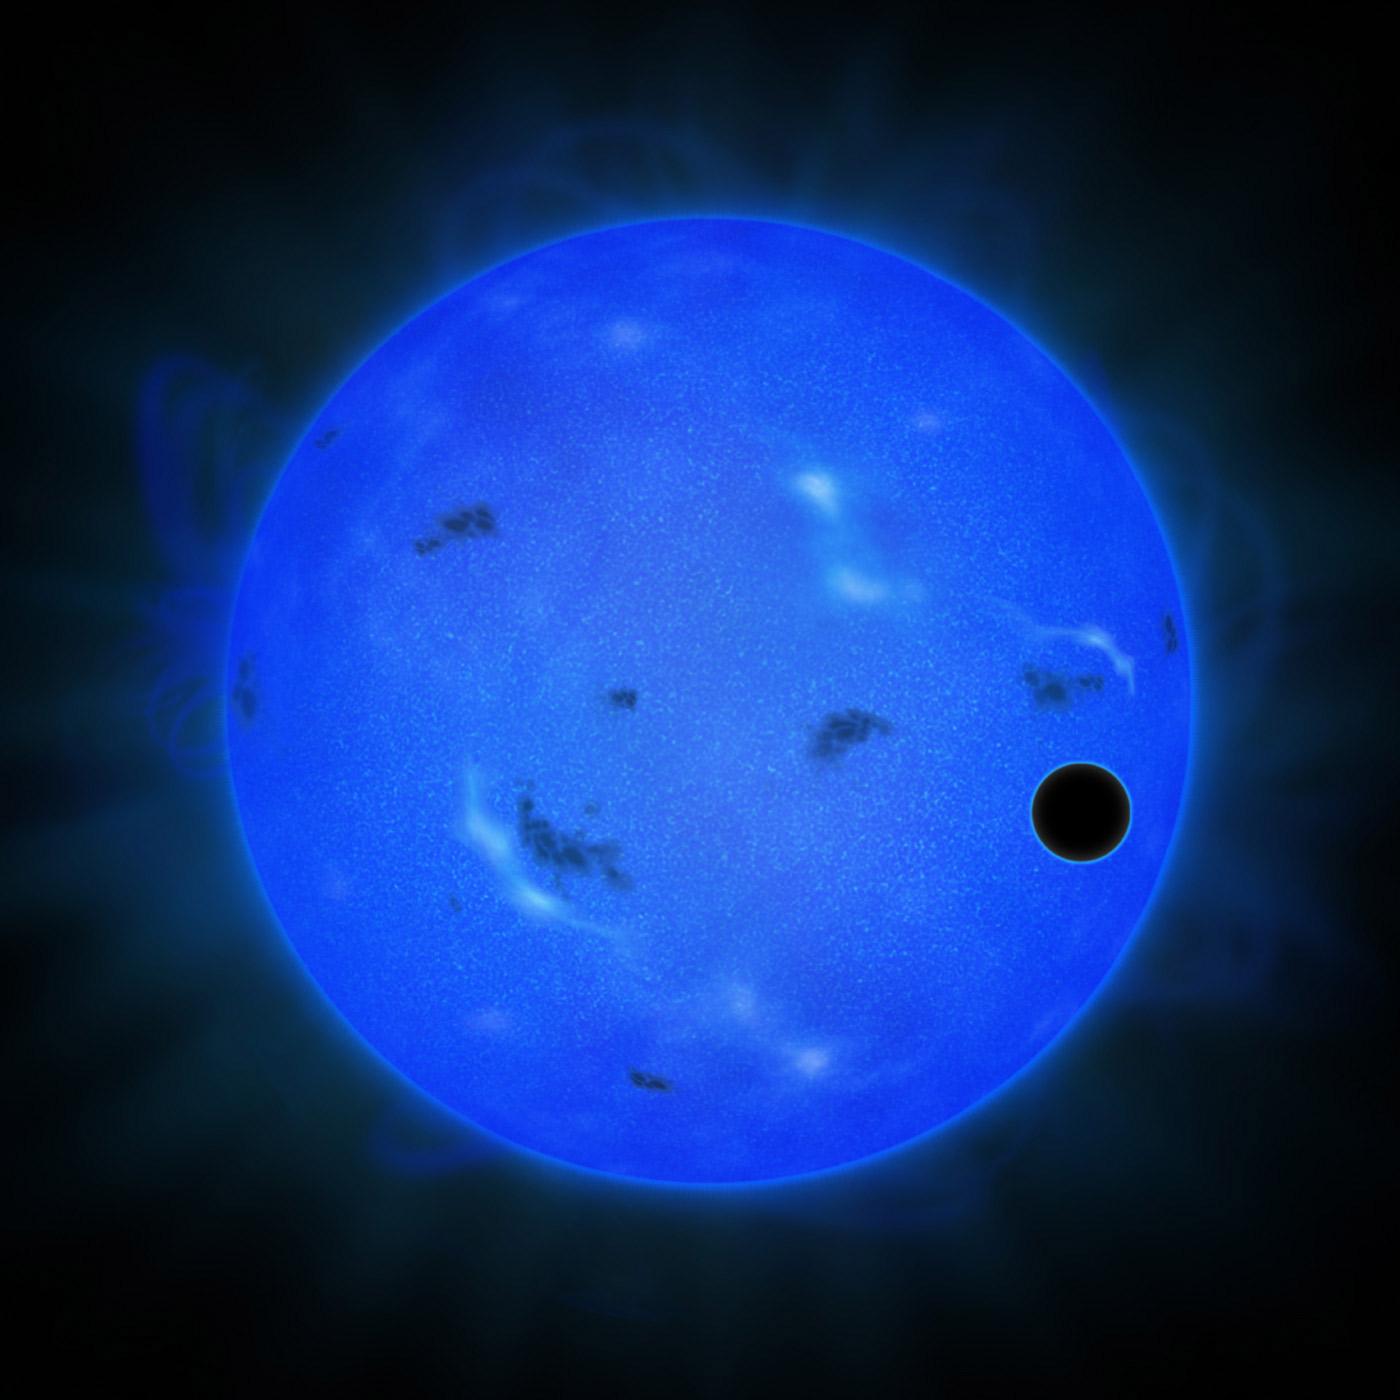 Artist's rendition of a transit of GJ 1214 b in blue light. The blue sphere represents the host star GJ 1214, and the black ball in front of it on the right is GJ 1214 b. (Credit: NAOJ)